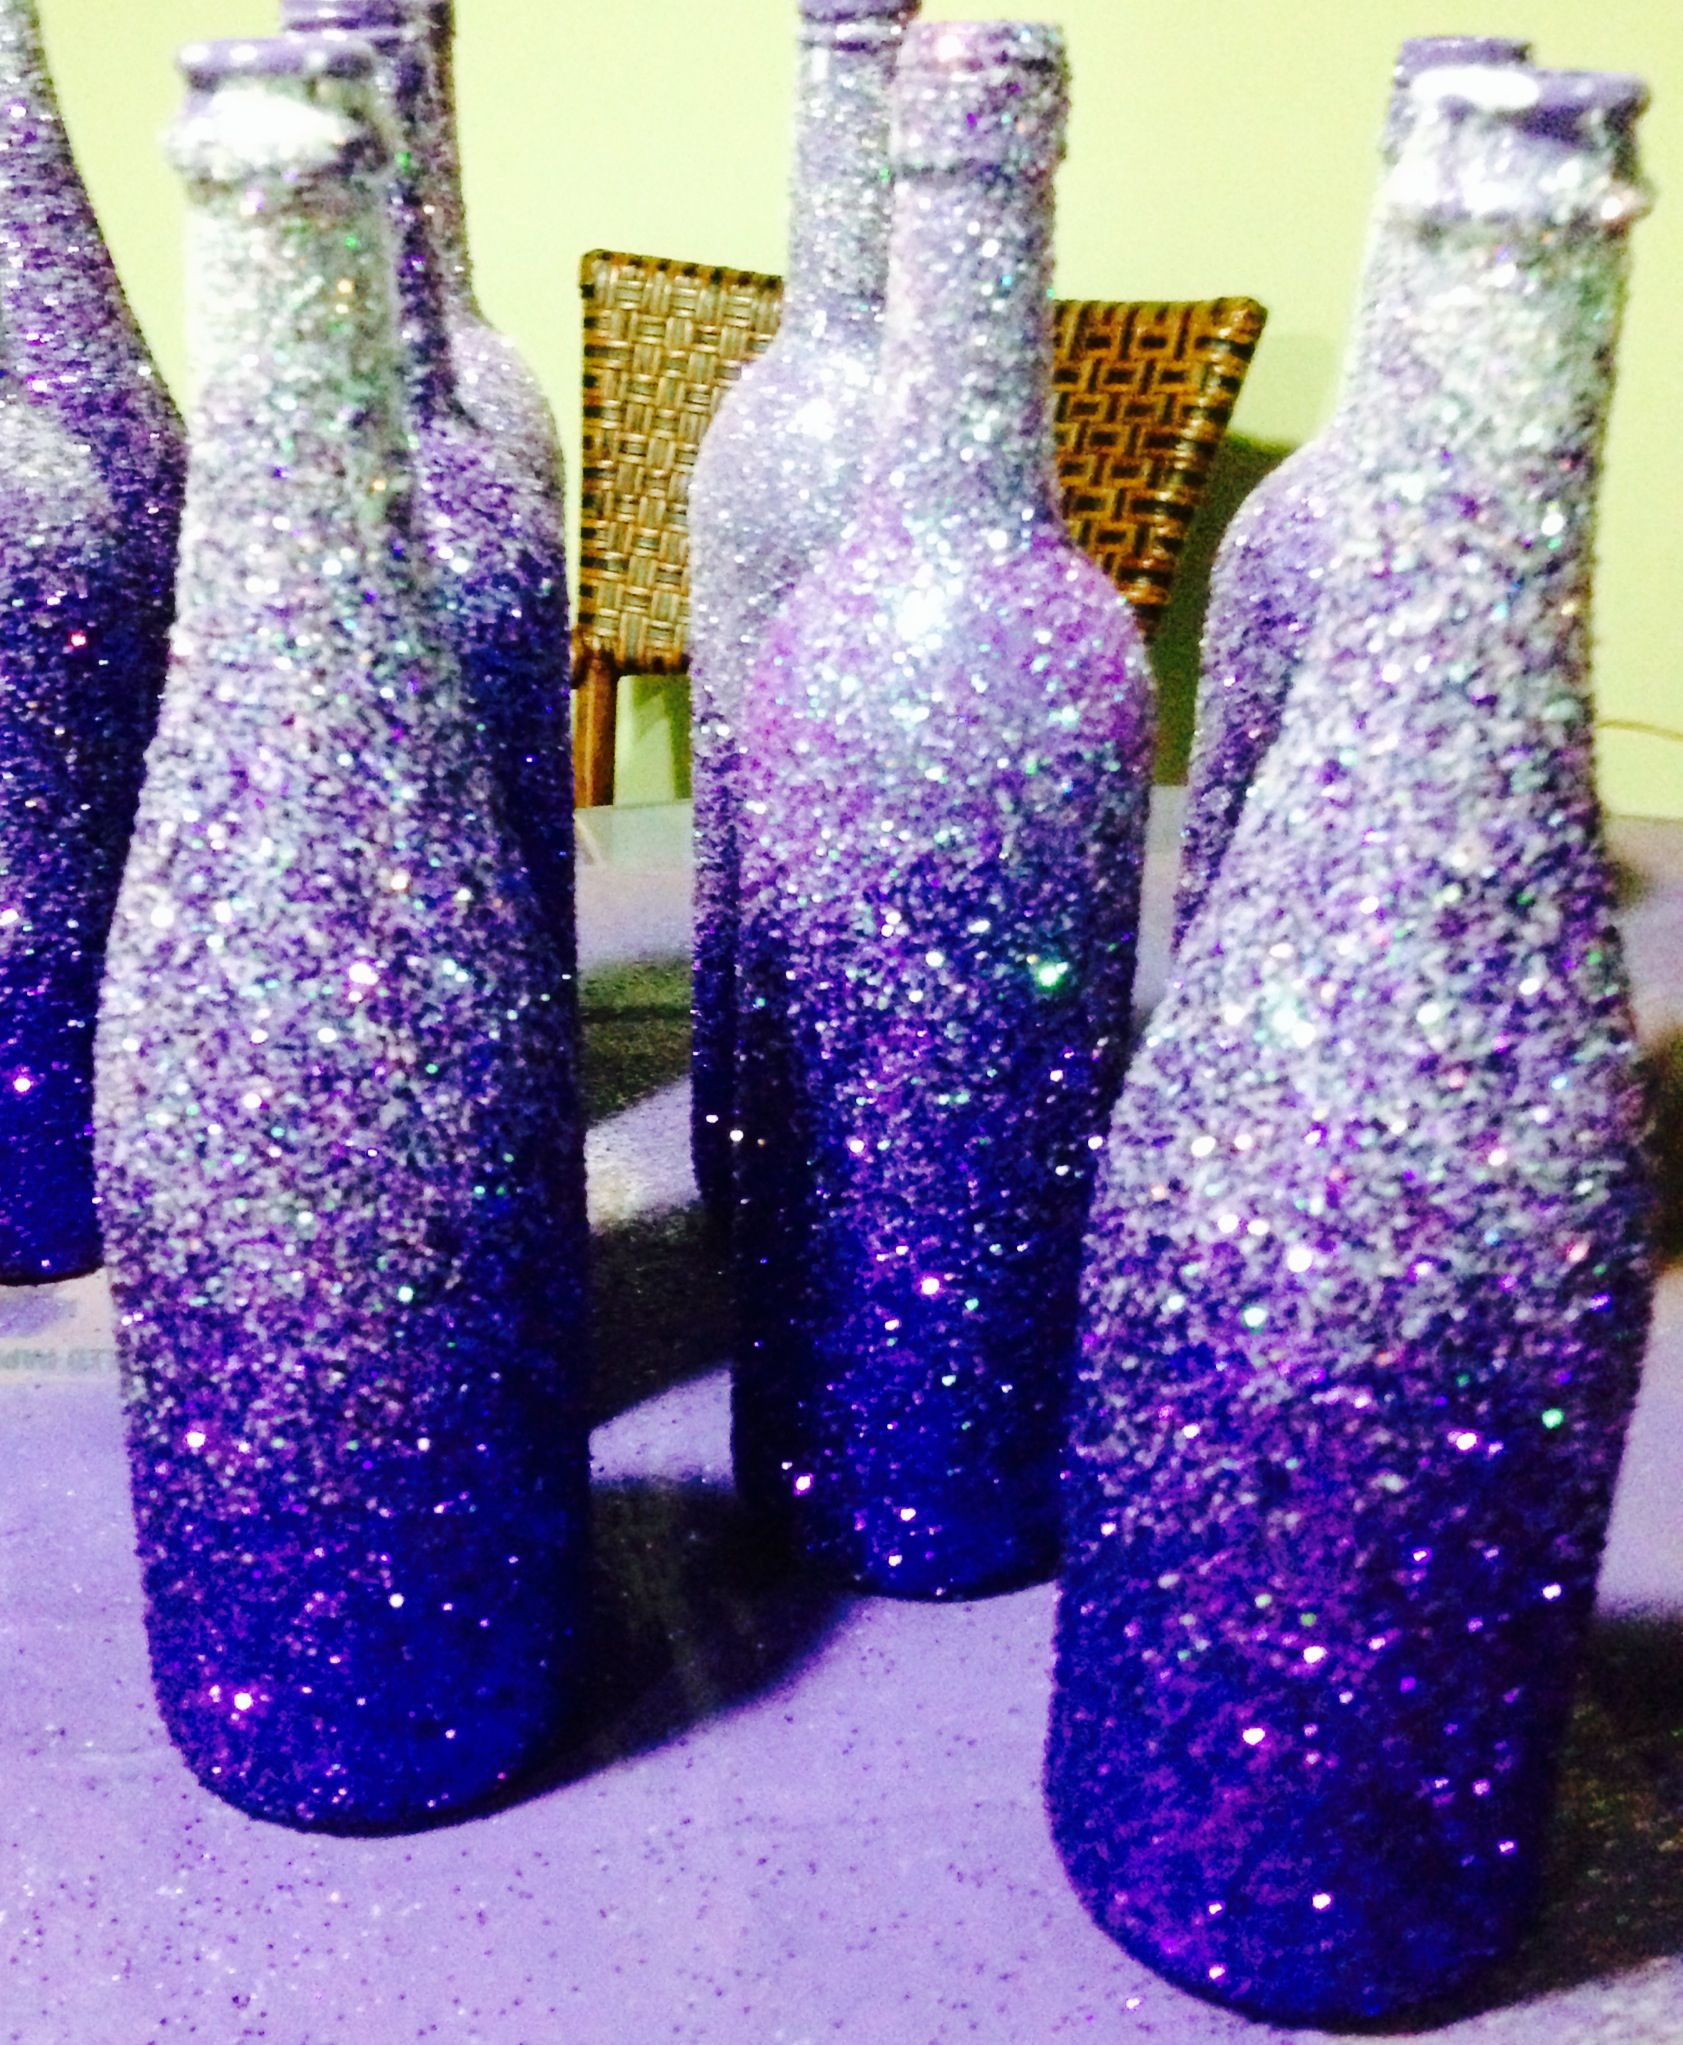 Decorating Wine Bottles With Glitter Glittered Wine Bottleswe Spray Painted The Bottles With Purple